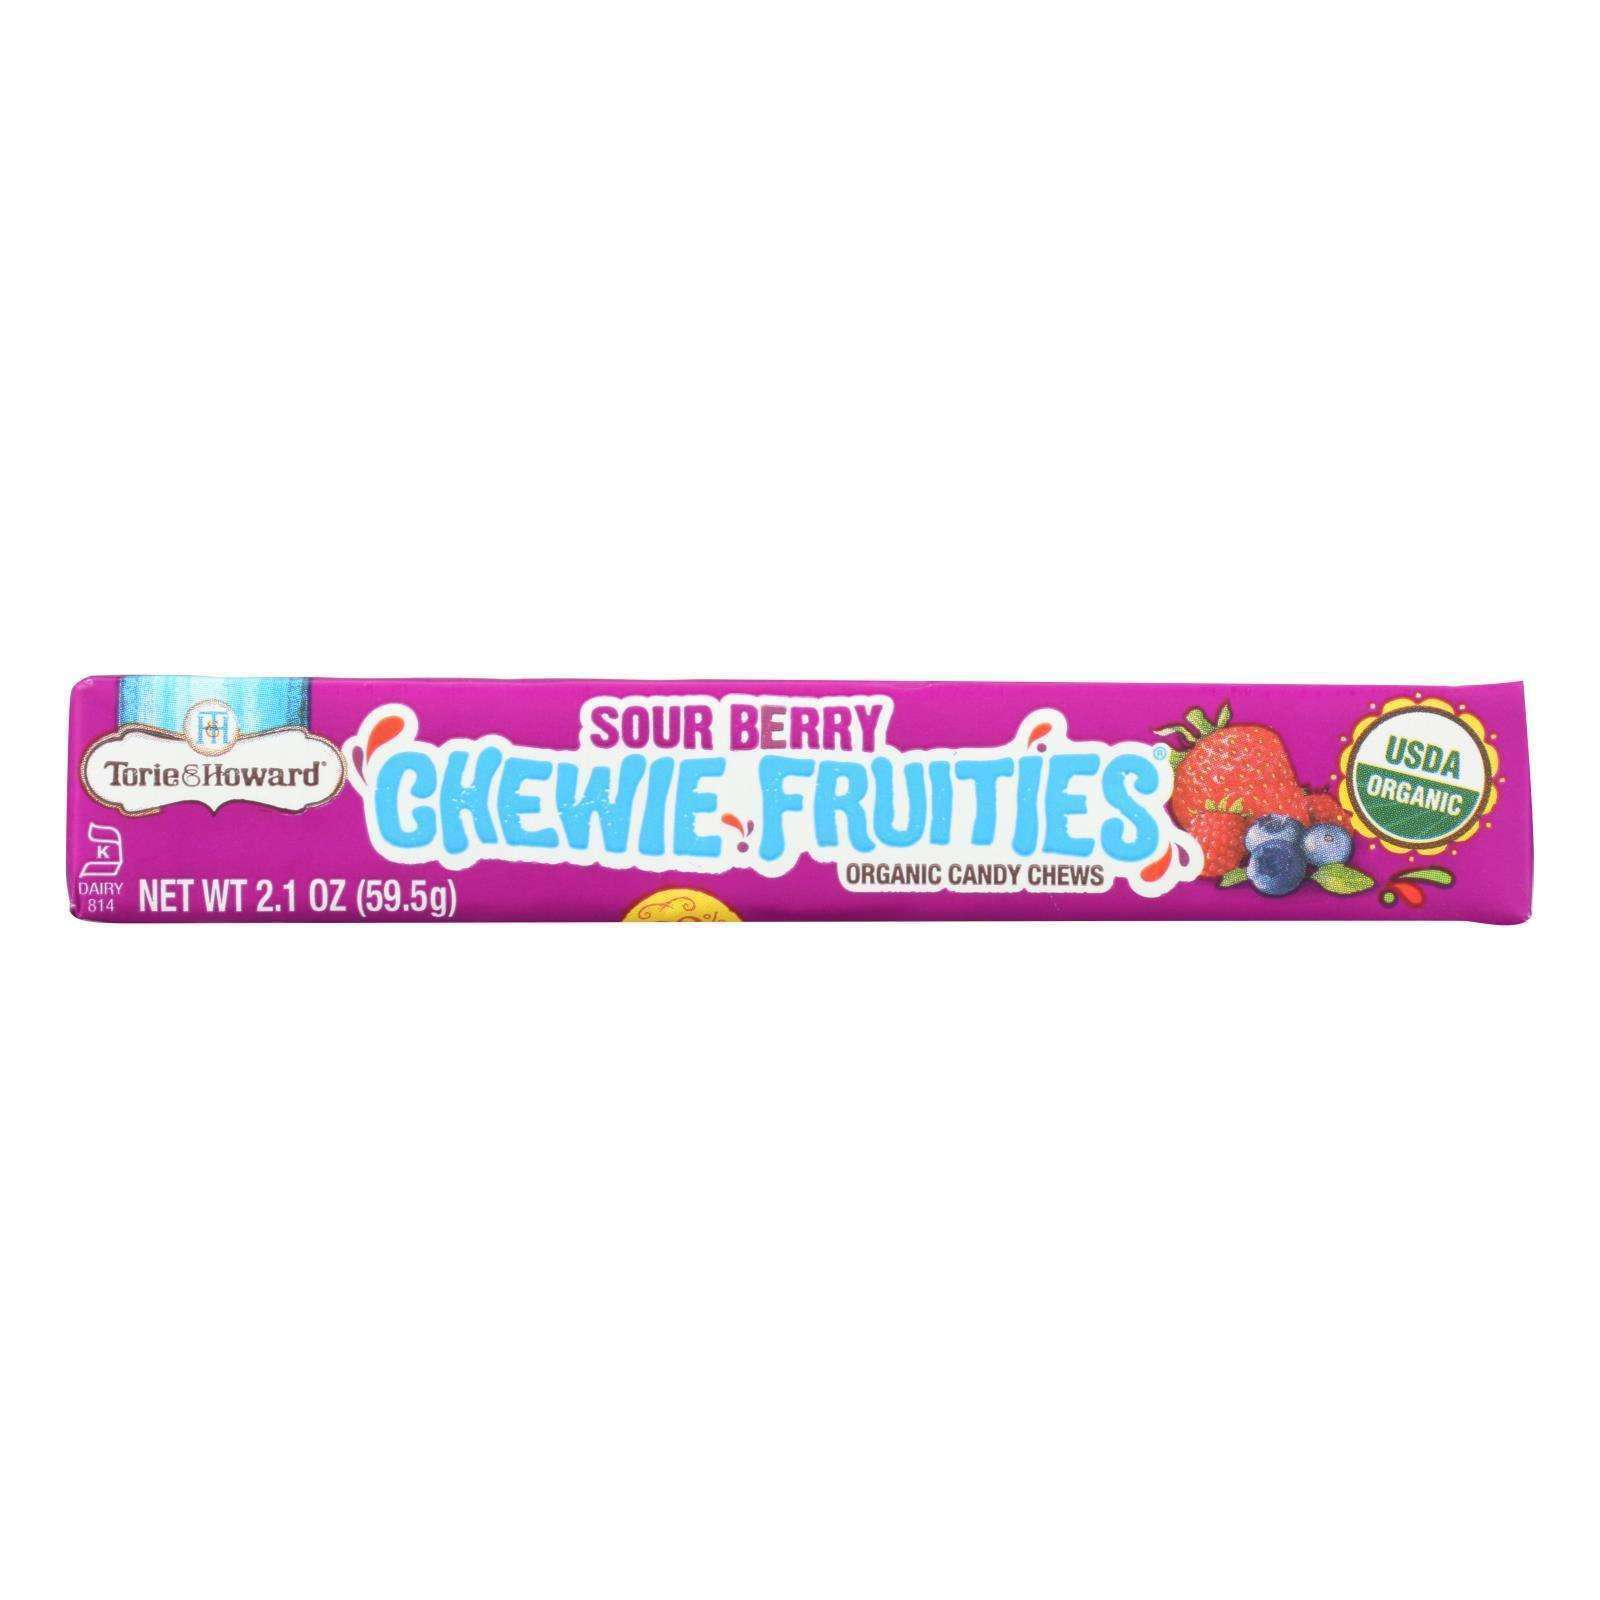 Torie And Howard - Chewy Fruities Organic Candy Chews - Sour Berry - Case Of 18 - 2.1 Oz. - BeeGreen